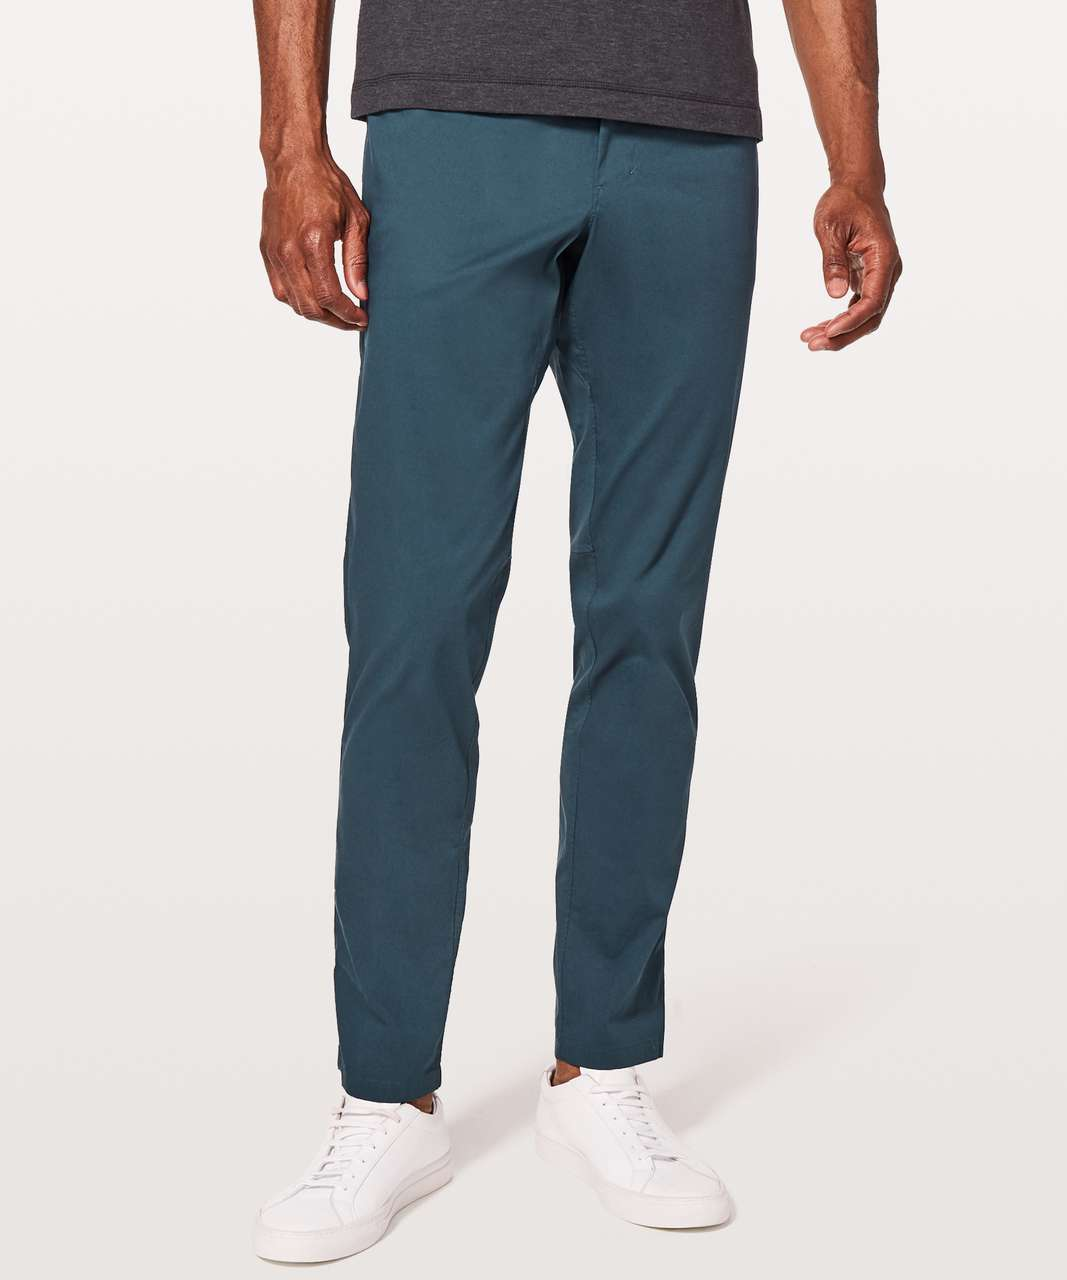 "Lululemon ABC Pant Slim *Swift Cotton 34"" - Mach Blue"